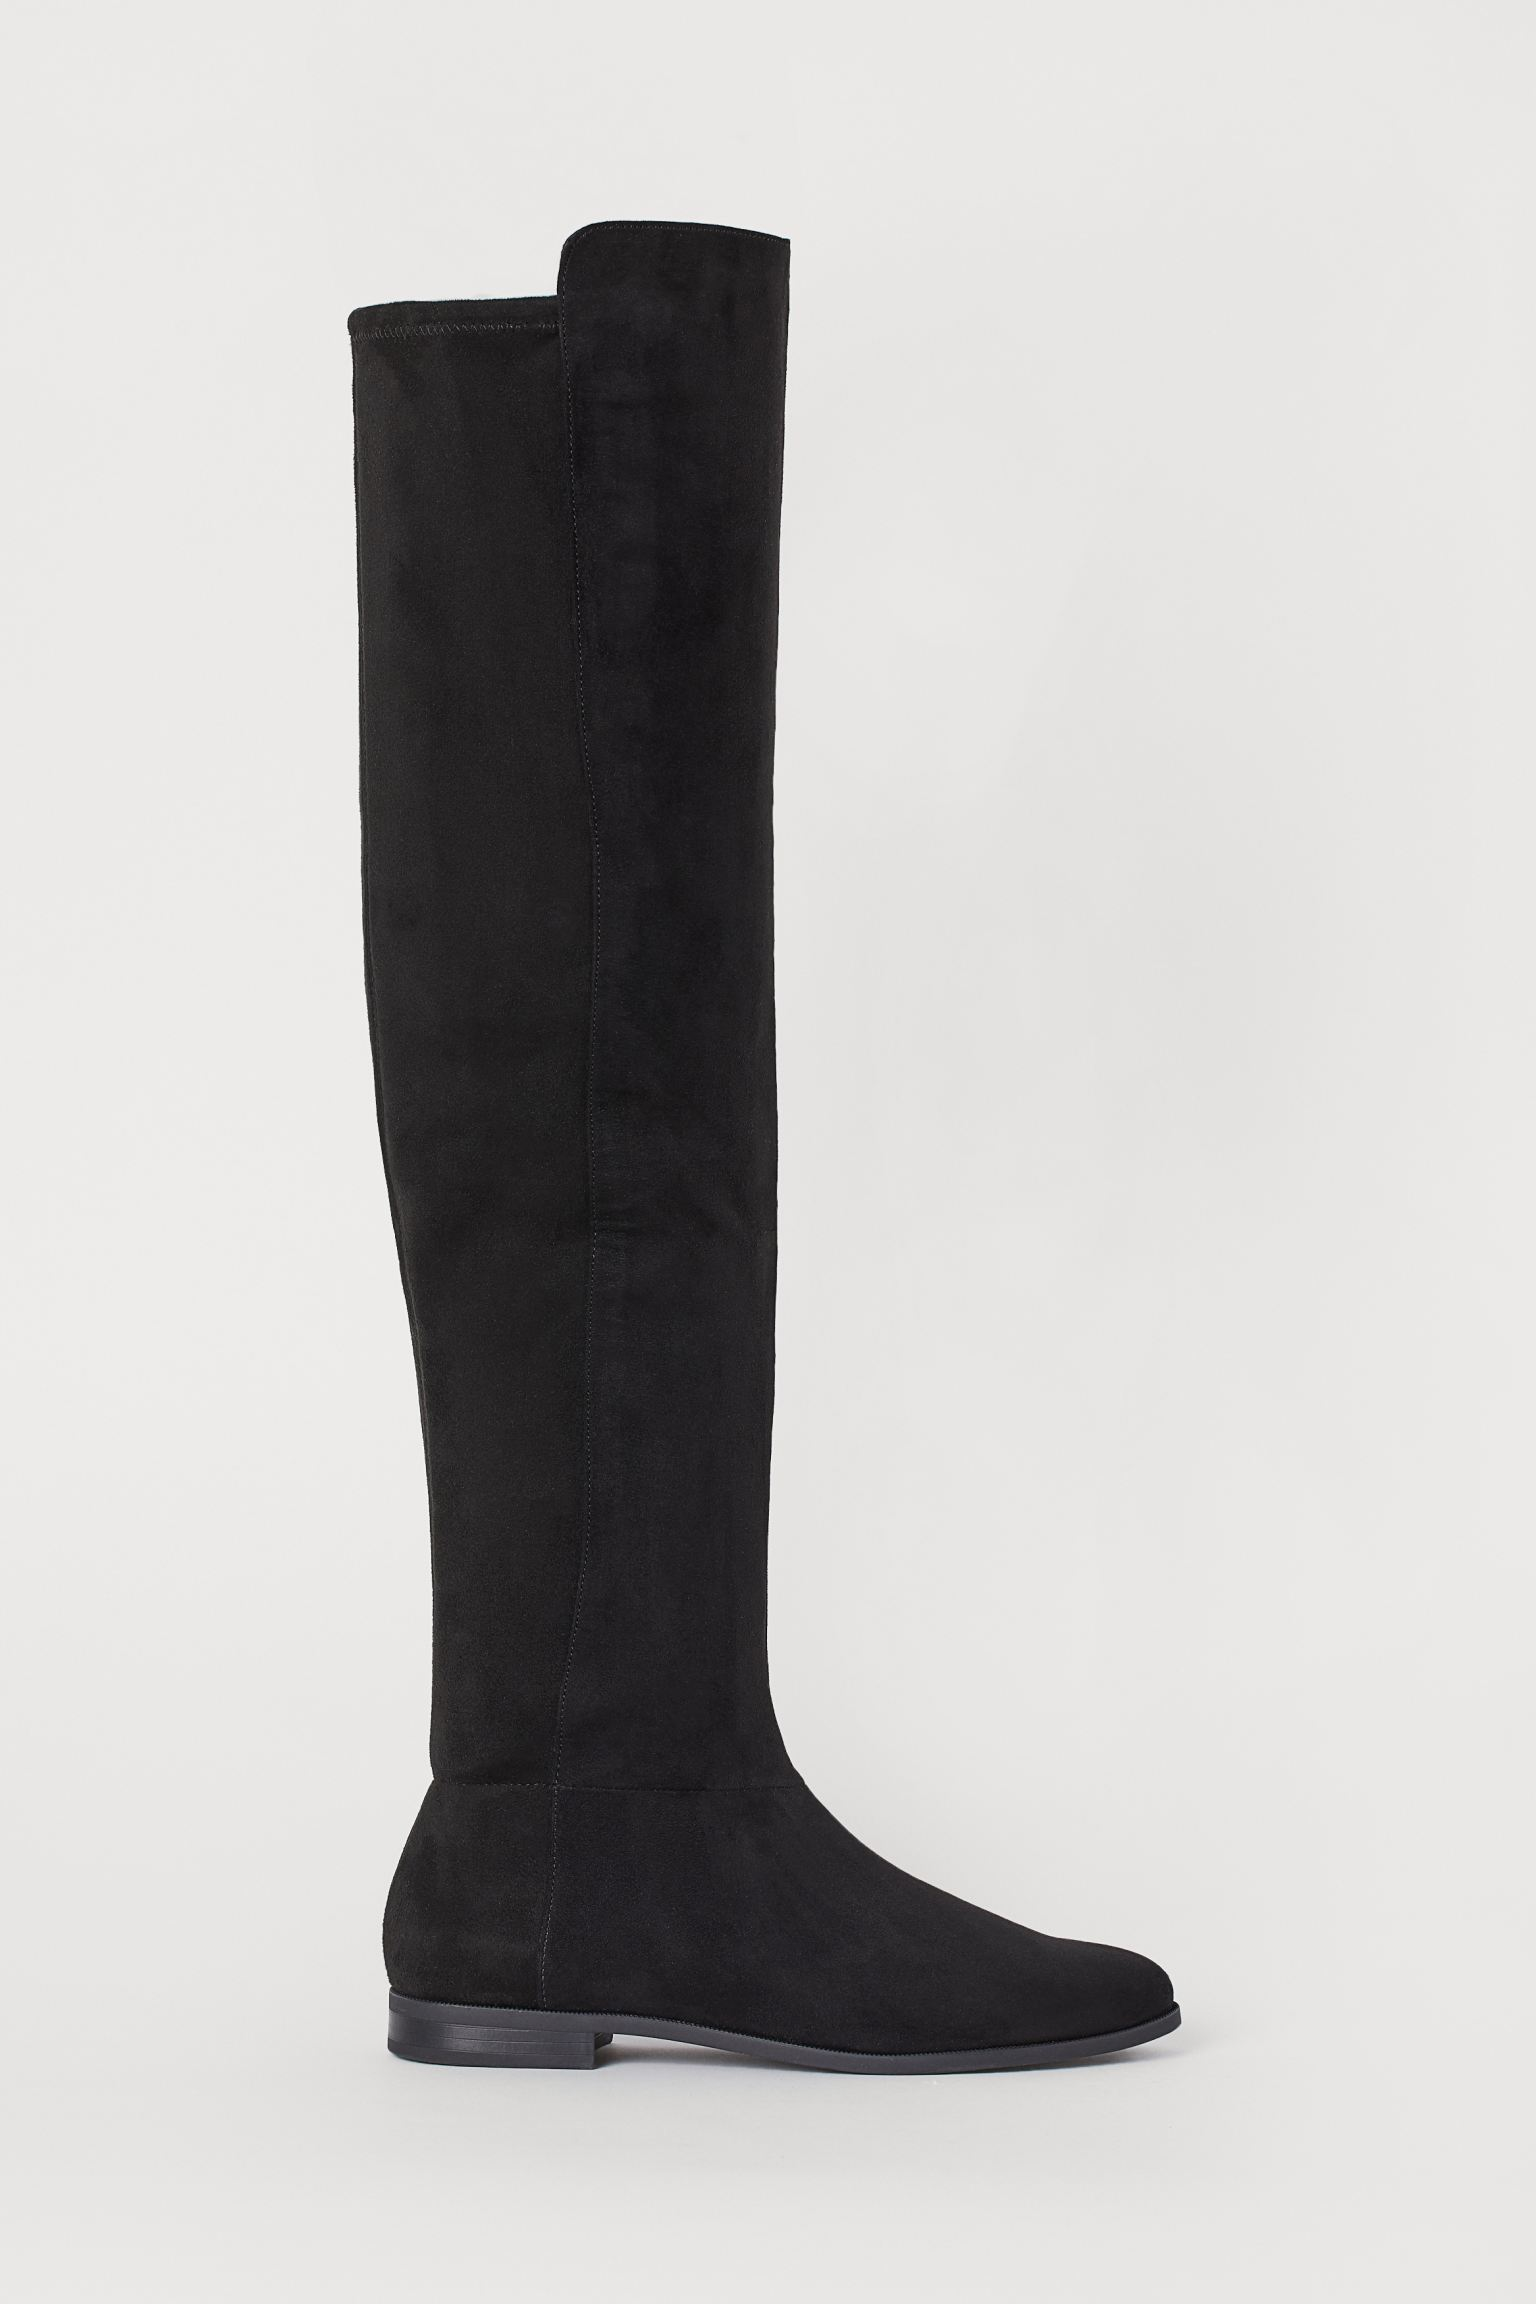 Soft synthetic suede boots up to the knee with a zipper on the side and elastic at the back. Satin lining and synthetic leather insole. Heel 2 cm.